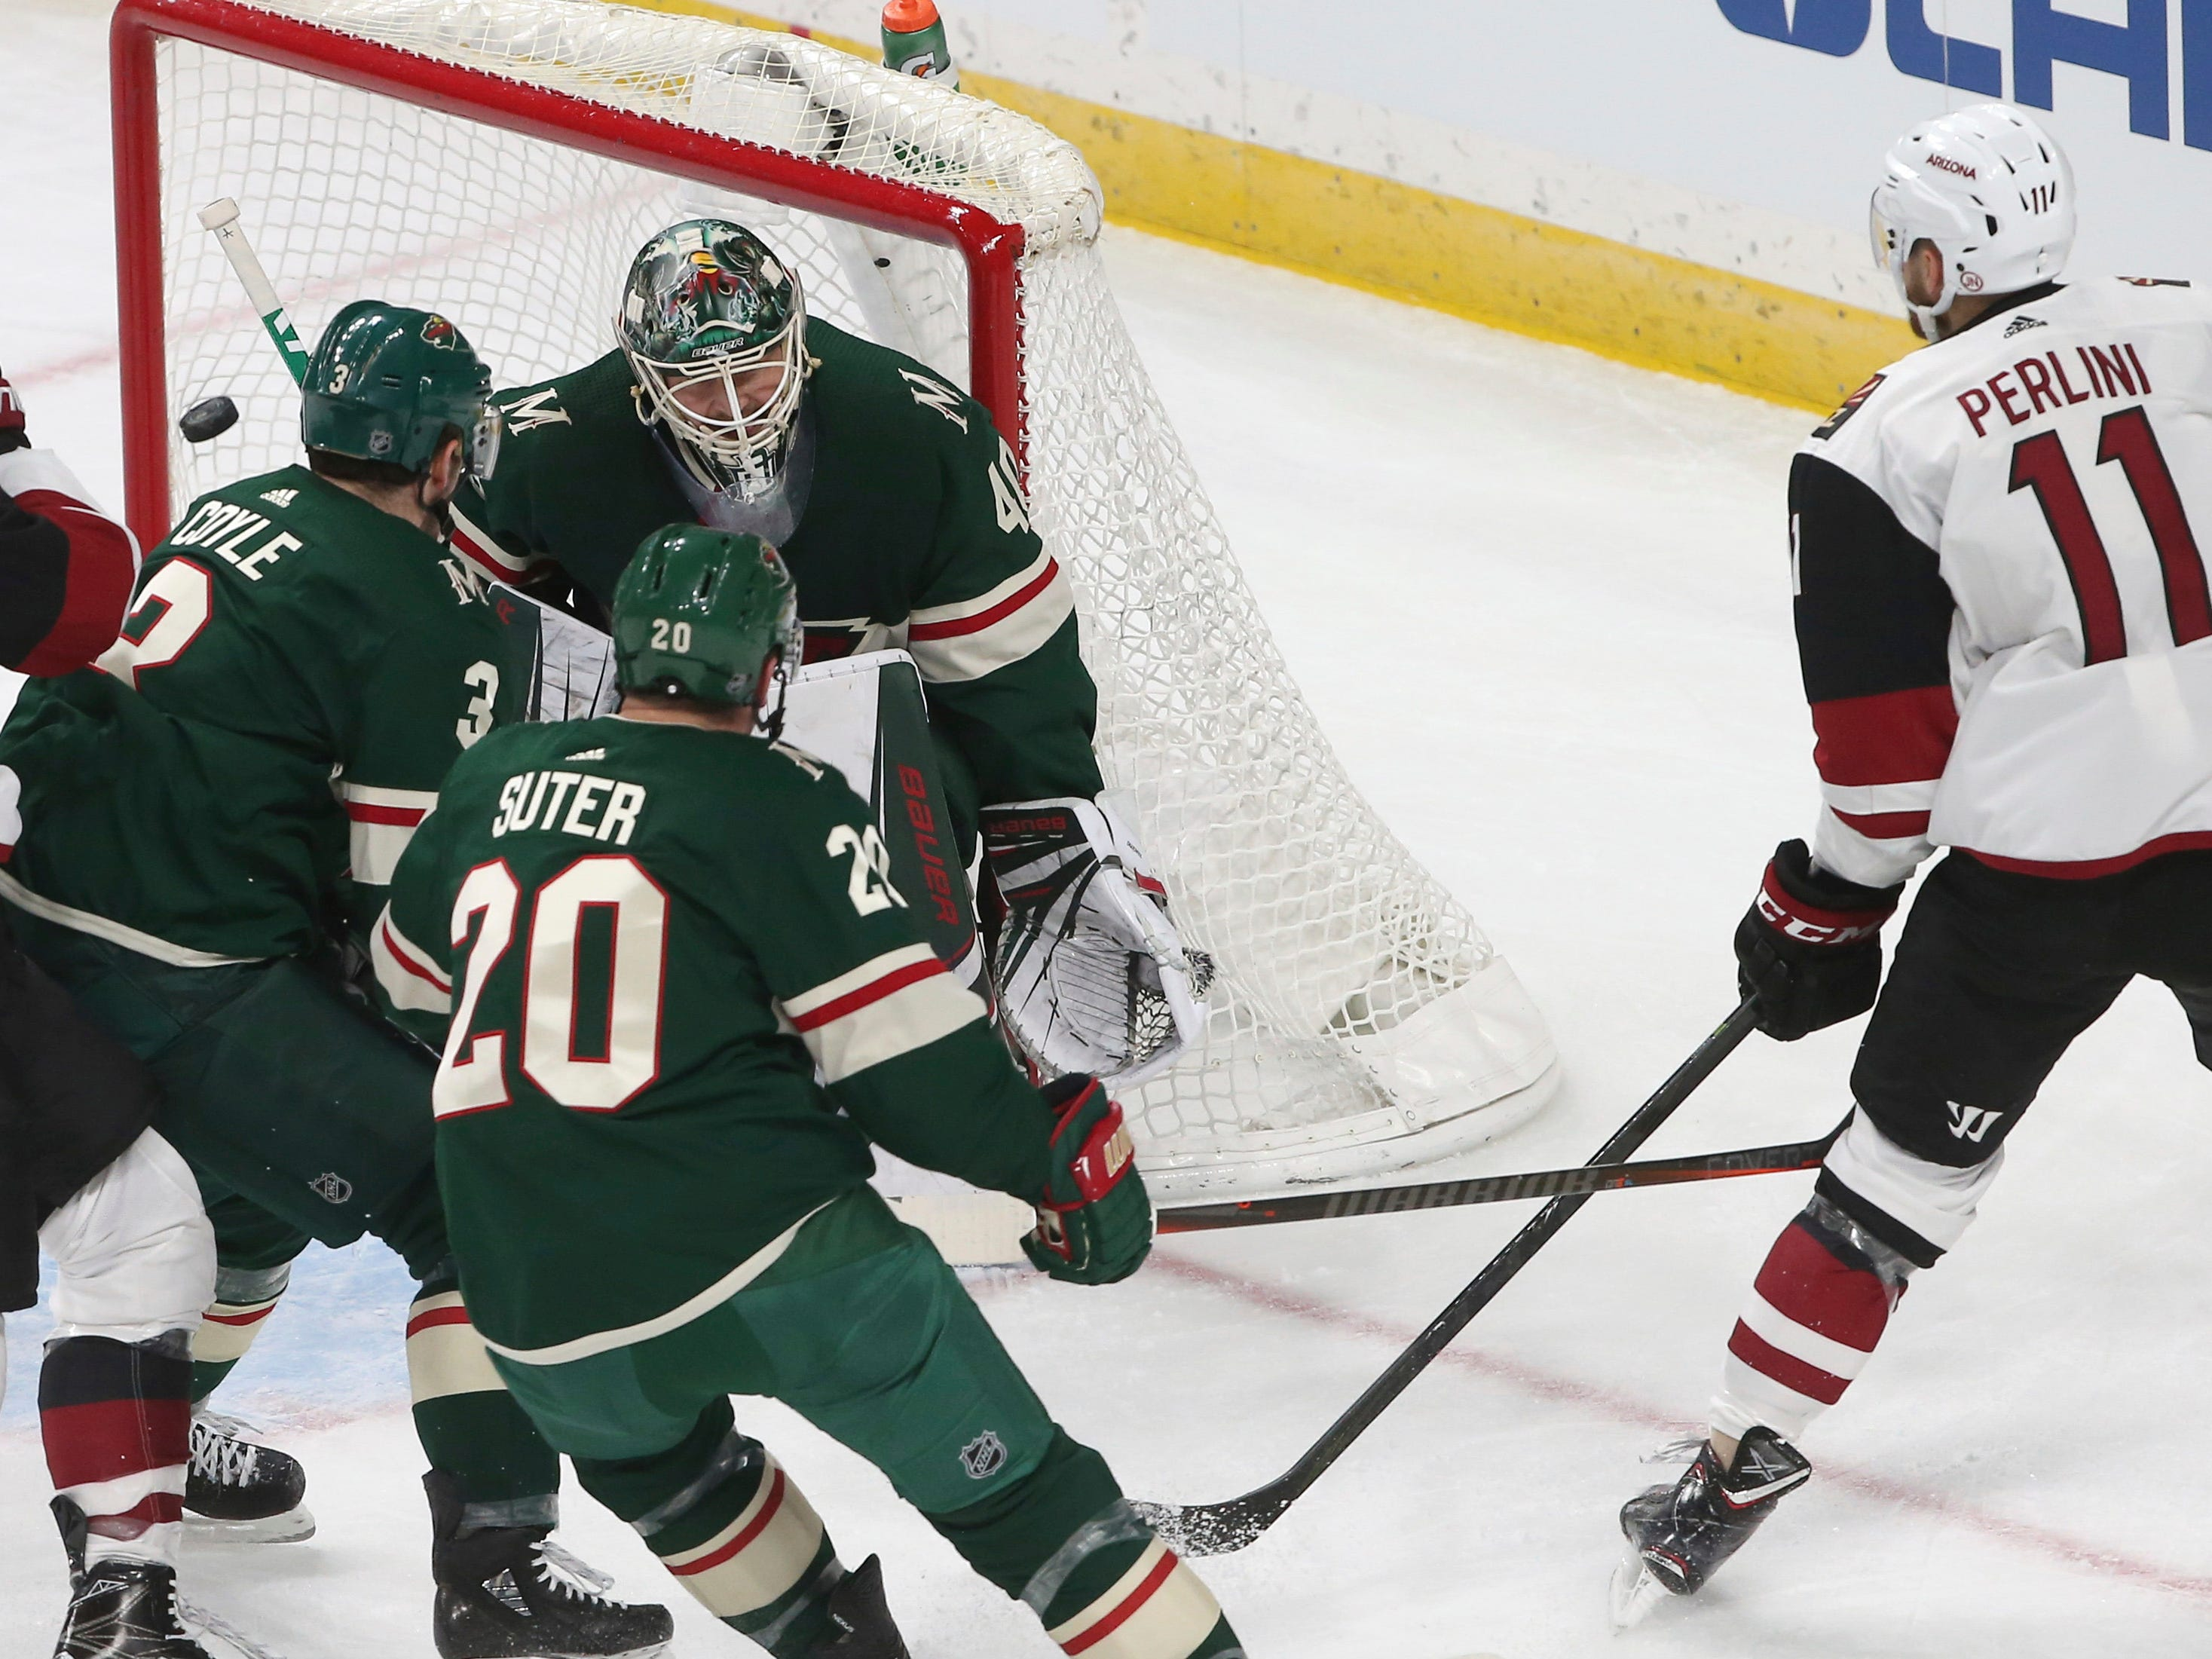 Arizona Coyotes' Brendan Perlini, right, of Great Britain, watches his power play goal off Minnesota Wild's goalie Devan Dubnyk in the first period of an NHL hockey game Tuesday, Oct. 16, 2018, in St. Paul, Minn.